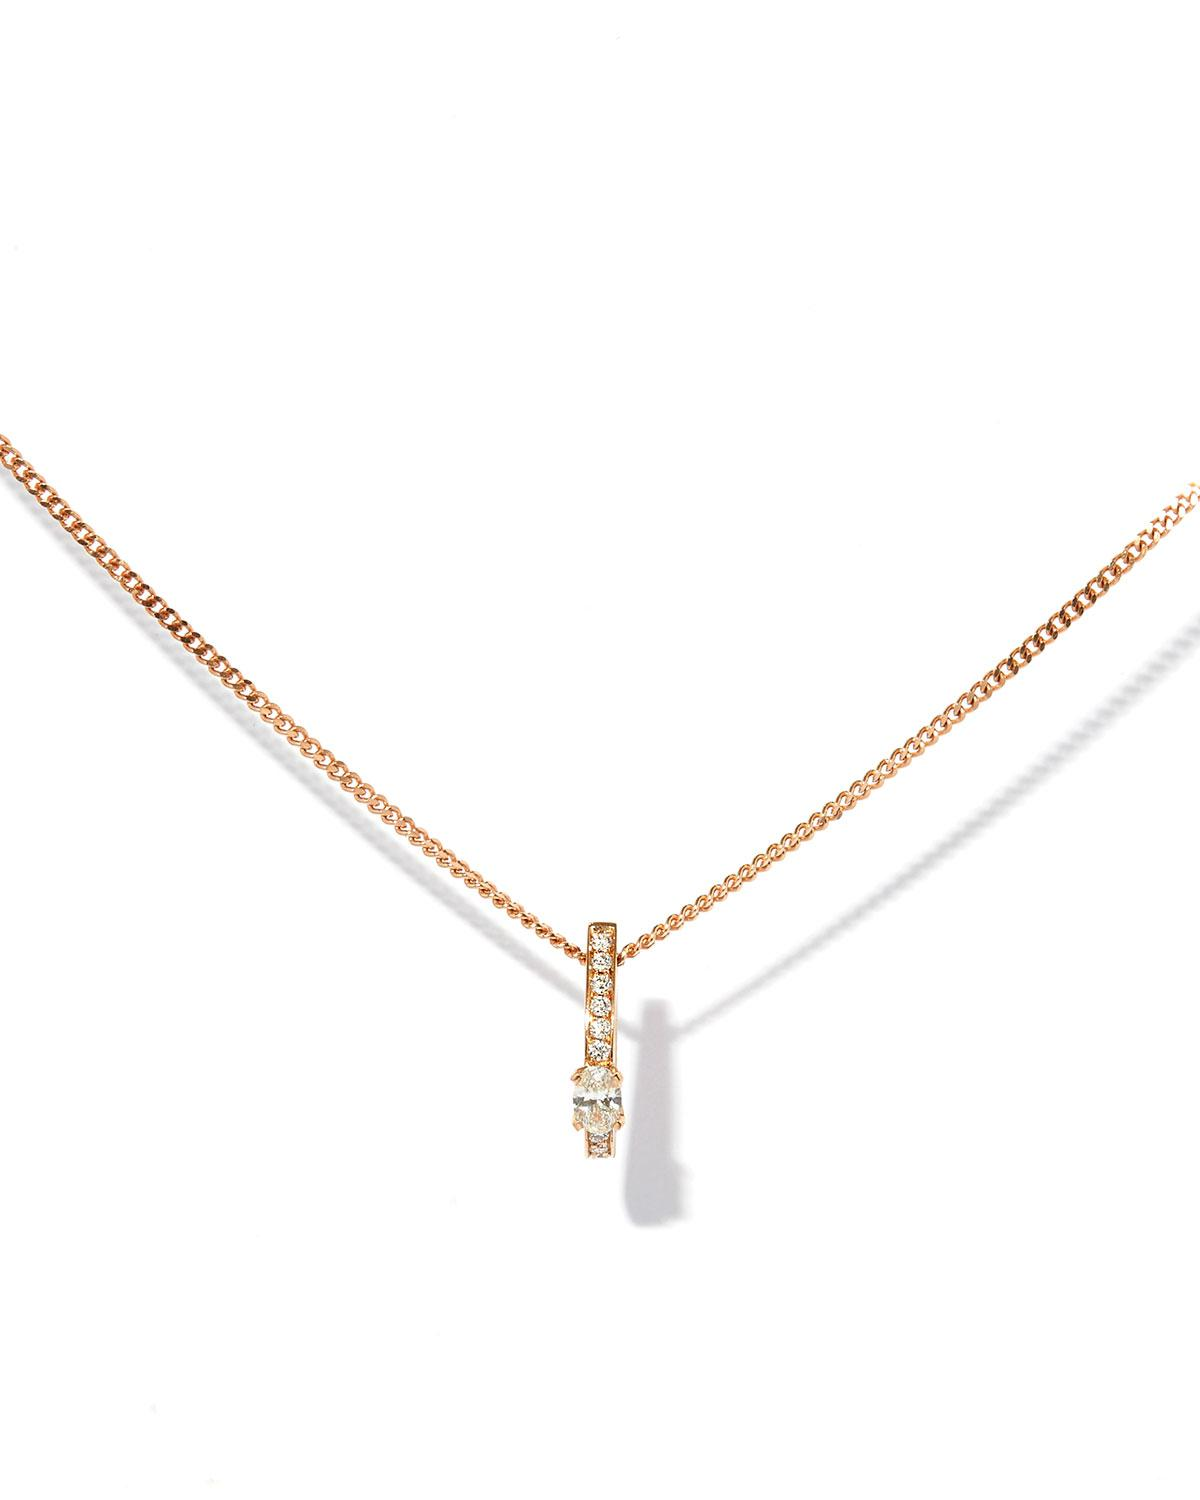 Repossi One-Row Pendant Necklace with Diamonds in 18K Rose Gold RuGUf3m